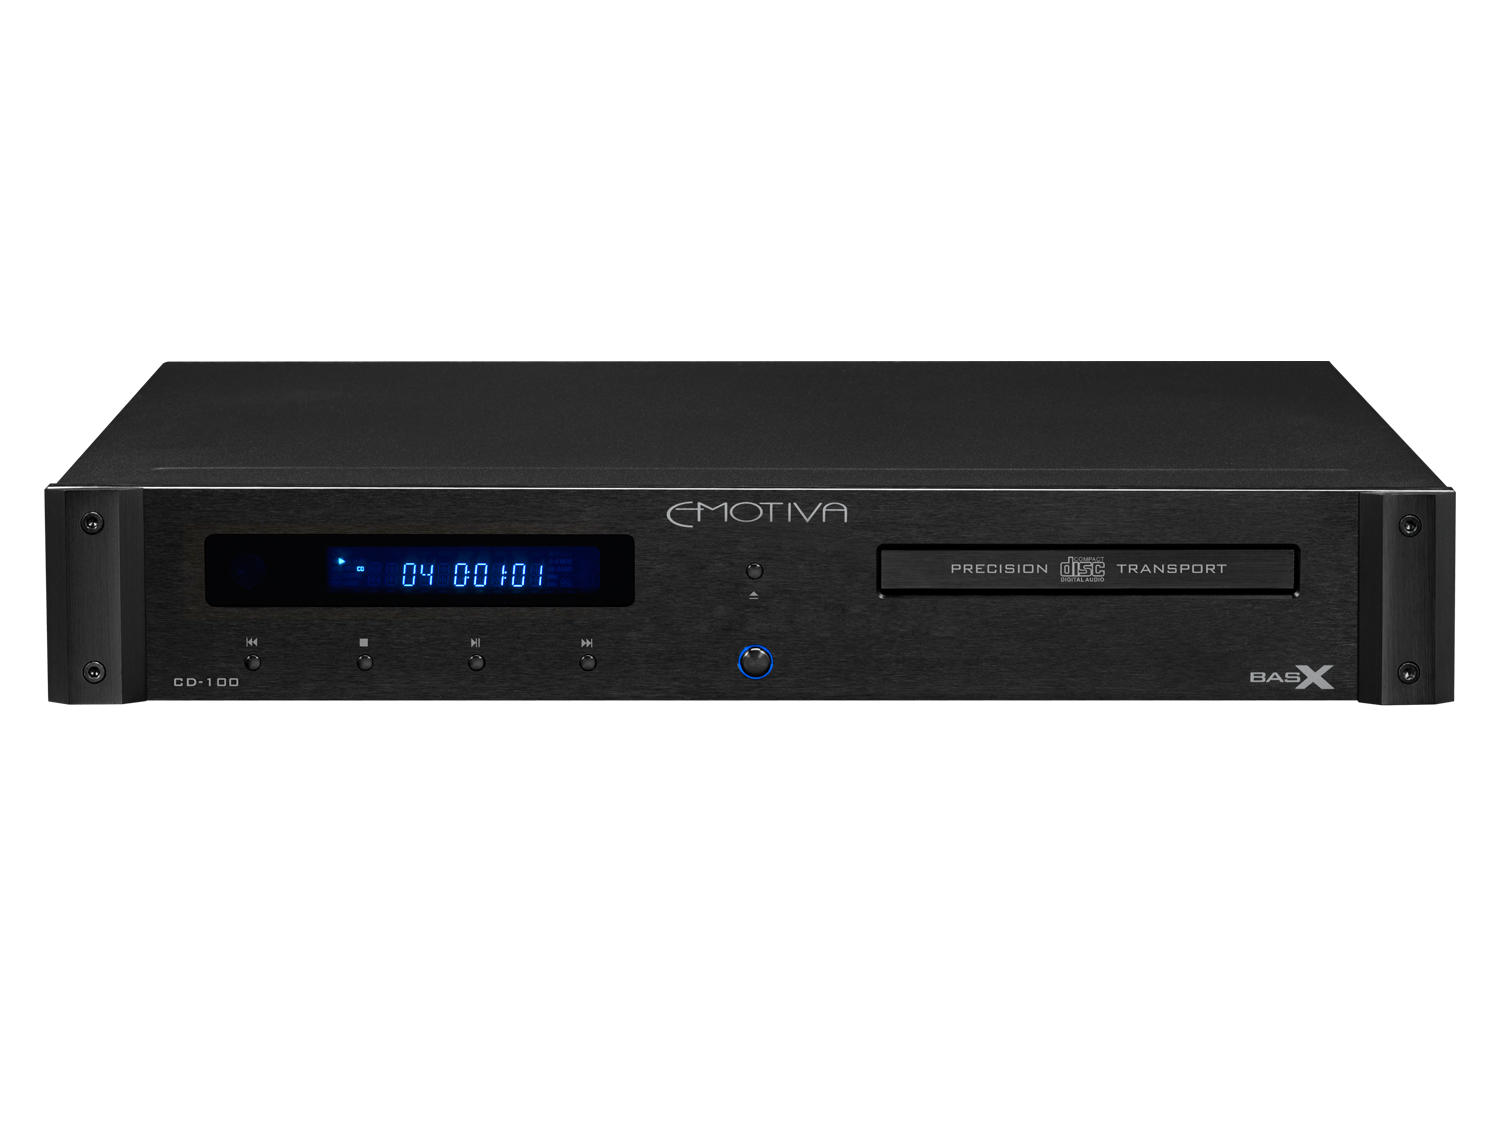 Cd player png. Emotiva basx precision and